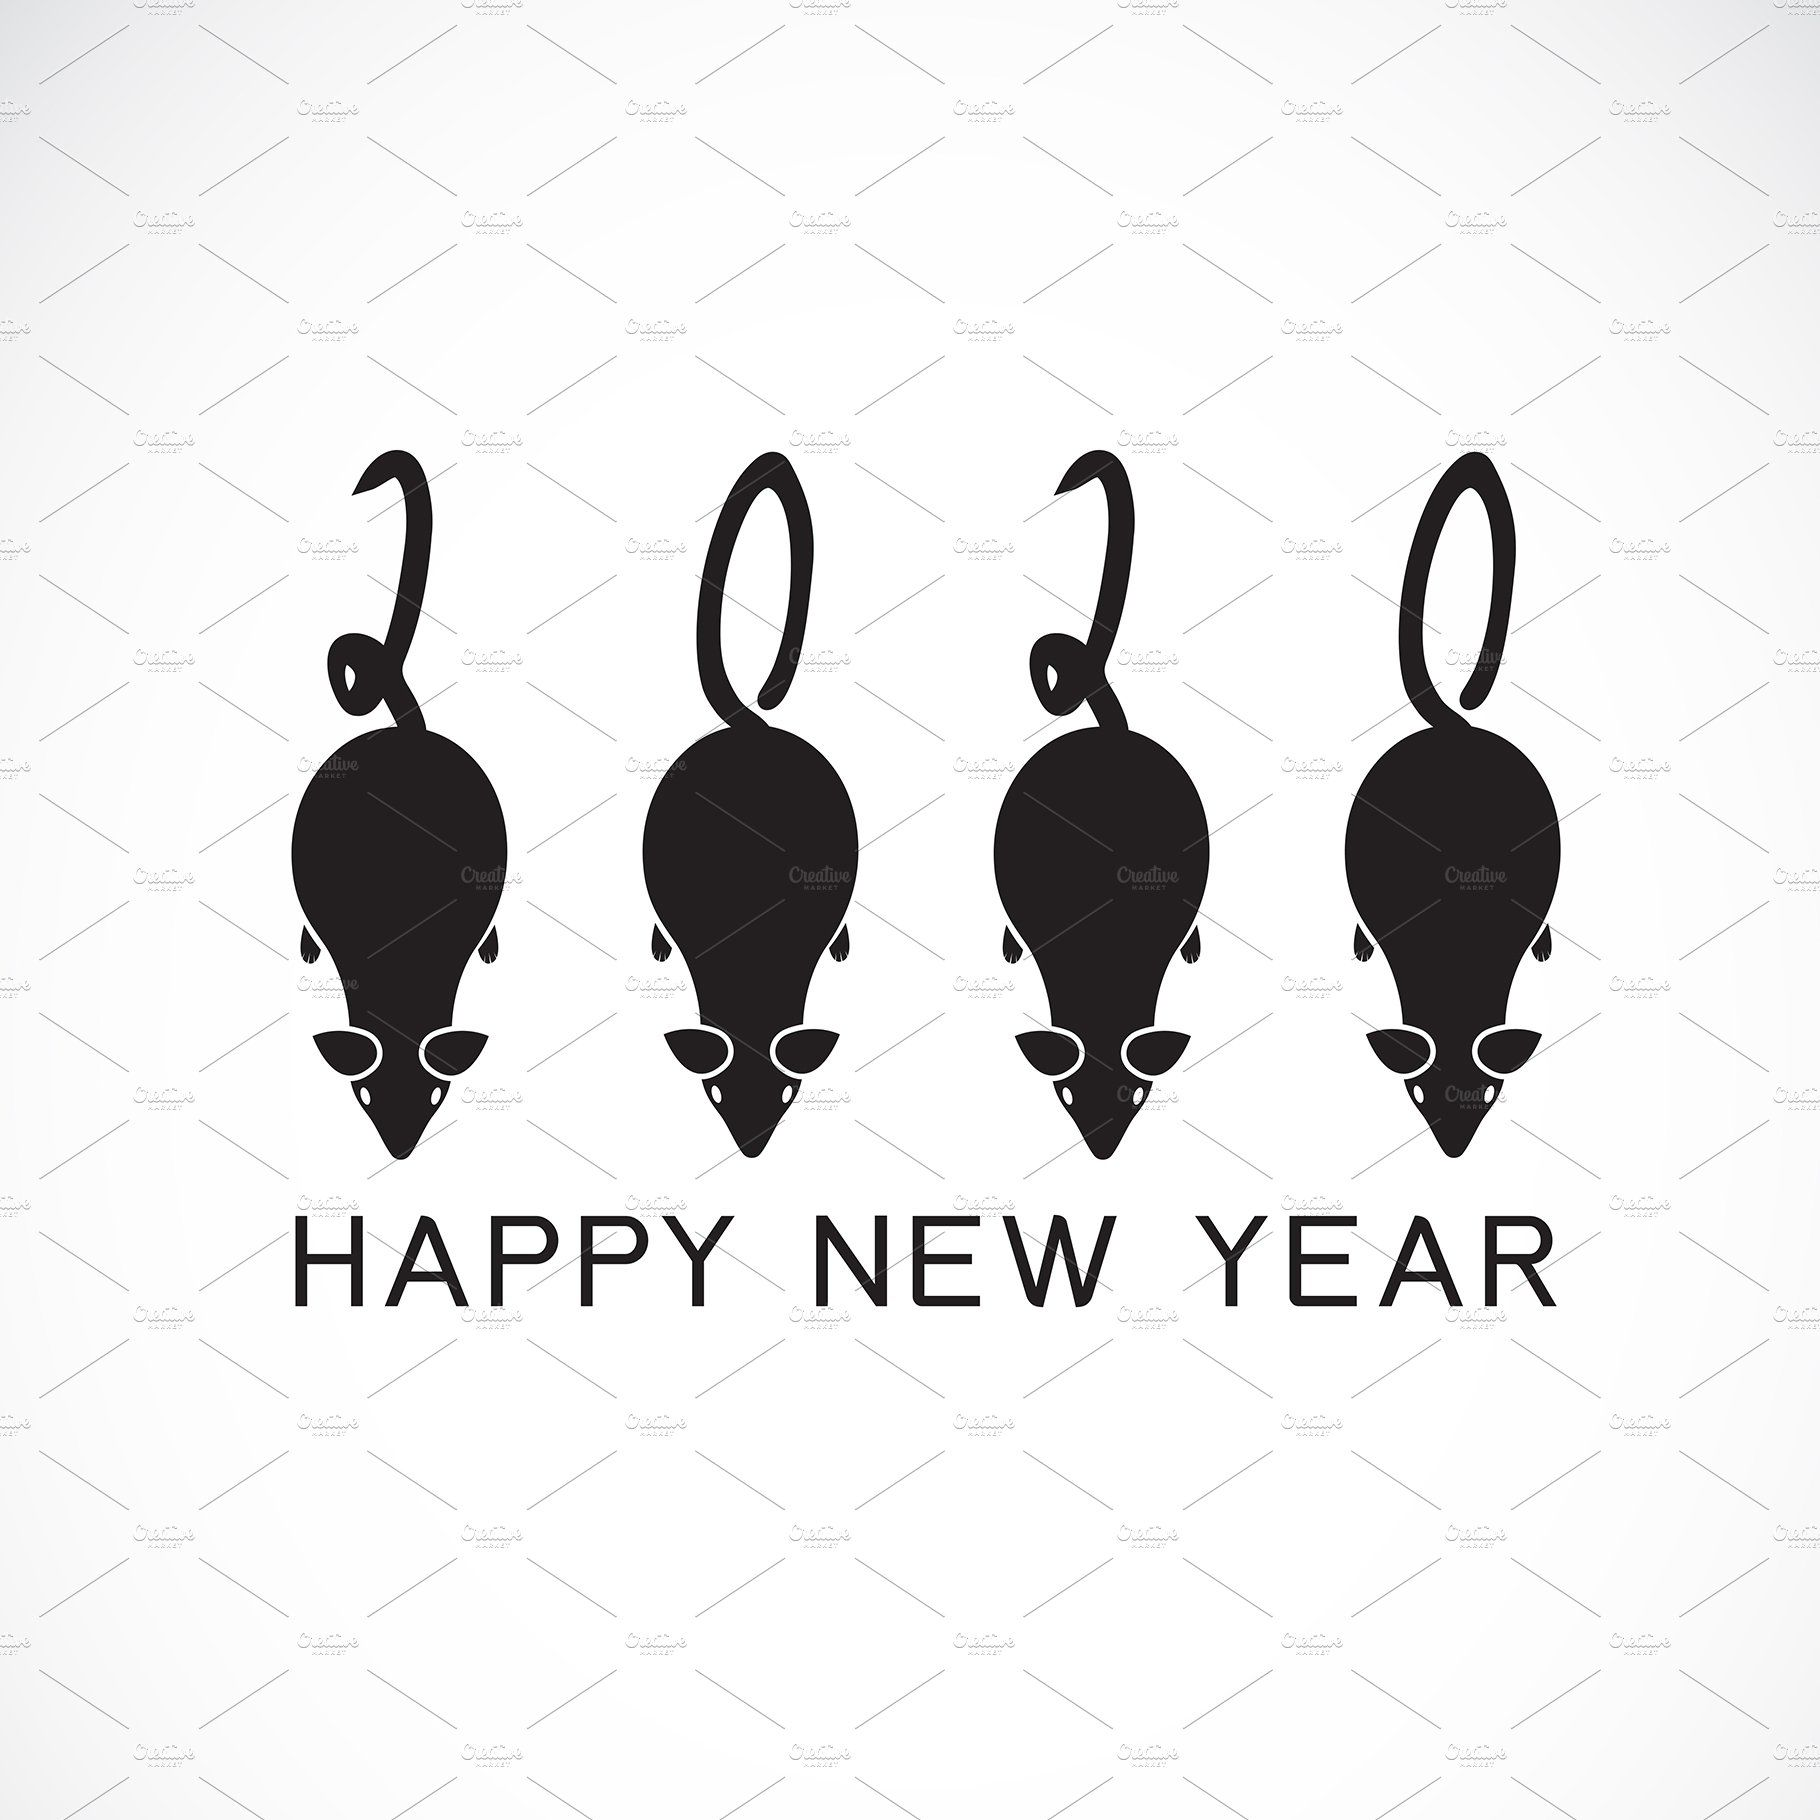 2020 Happy New Year Greeting Card New Year Greetings New Year Greeting Cards Happy New Year Greetings